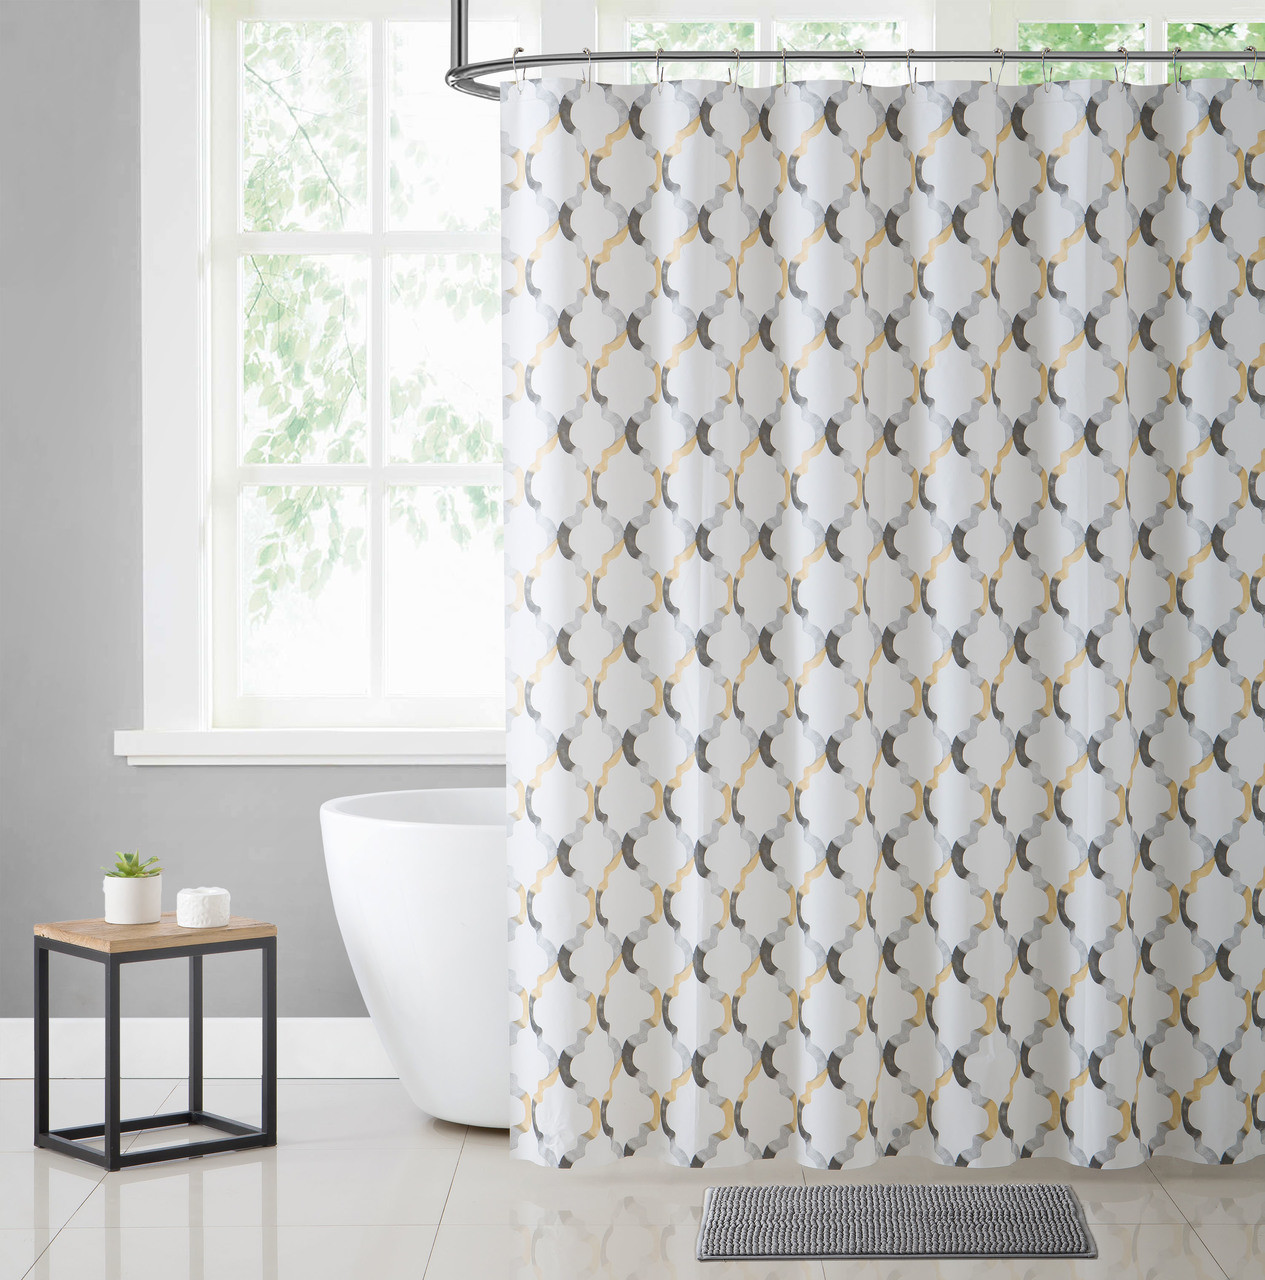 White Yellow And Gray Moroccan Tile Design PEVA Shower Curtain Liner